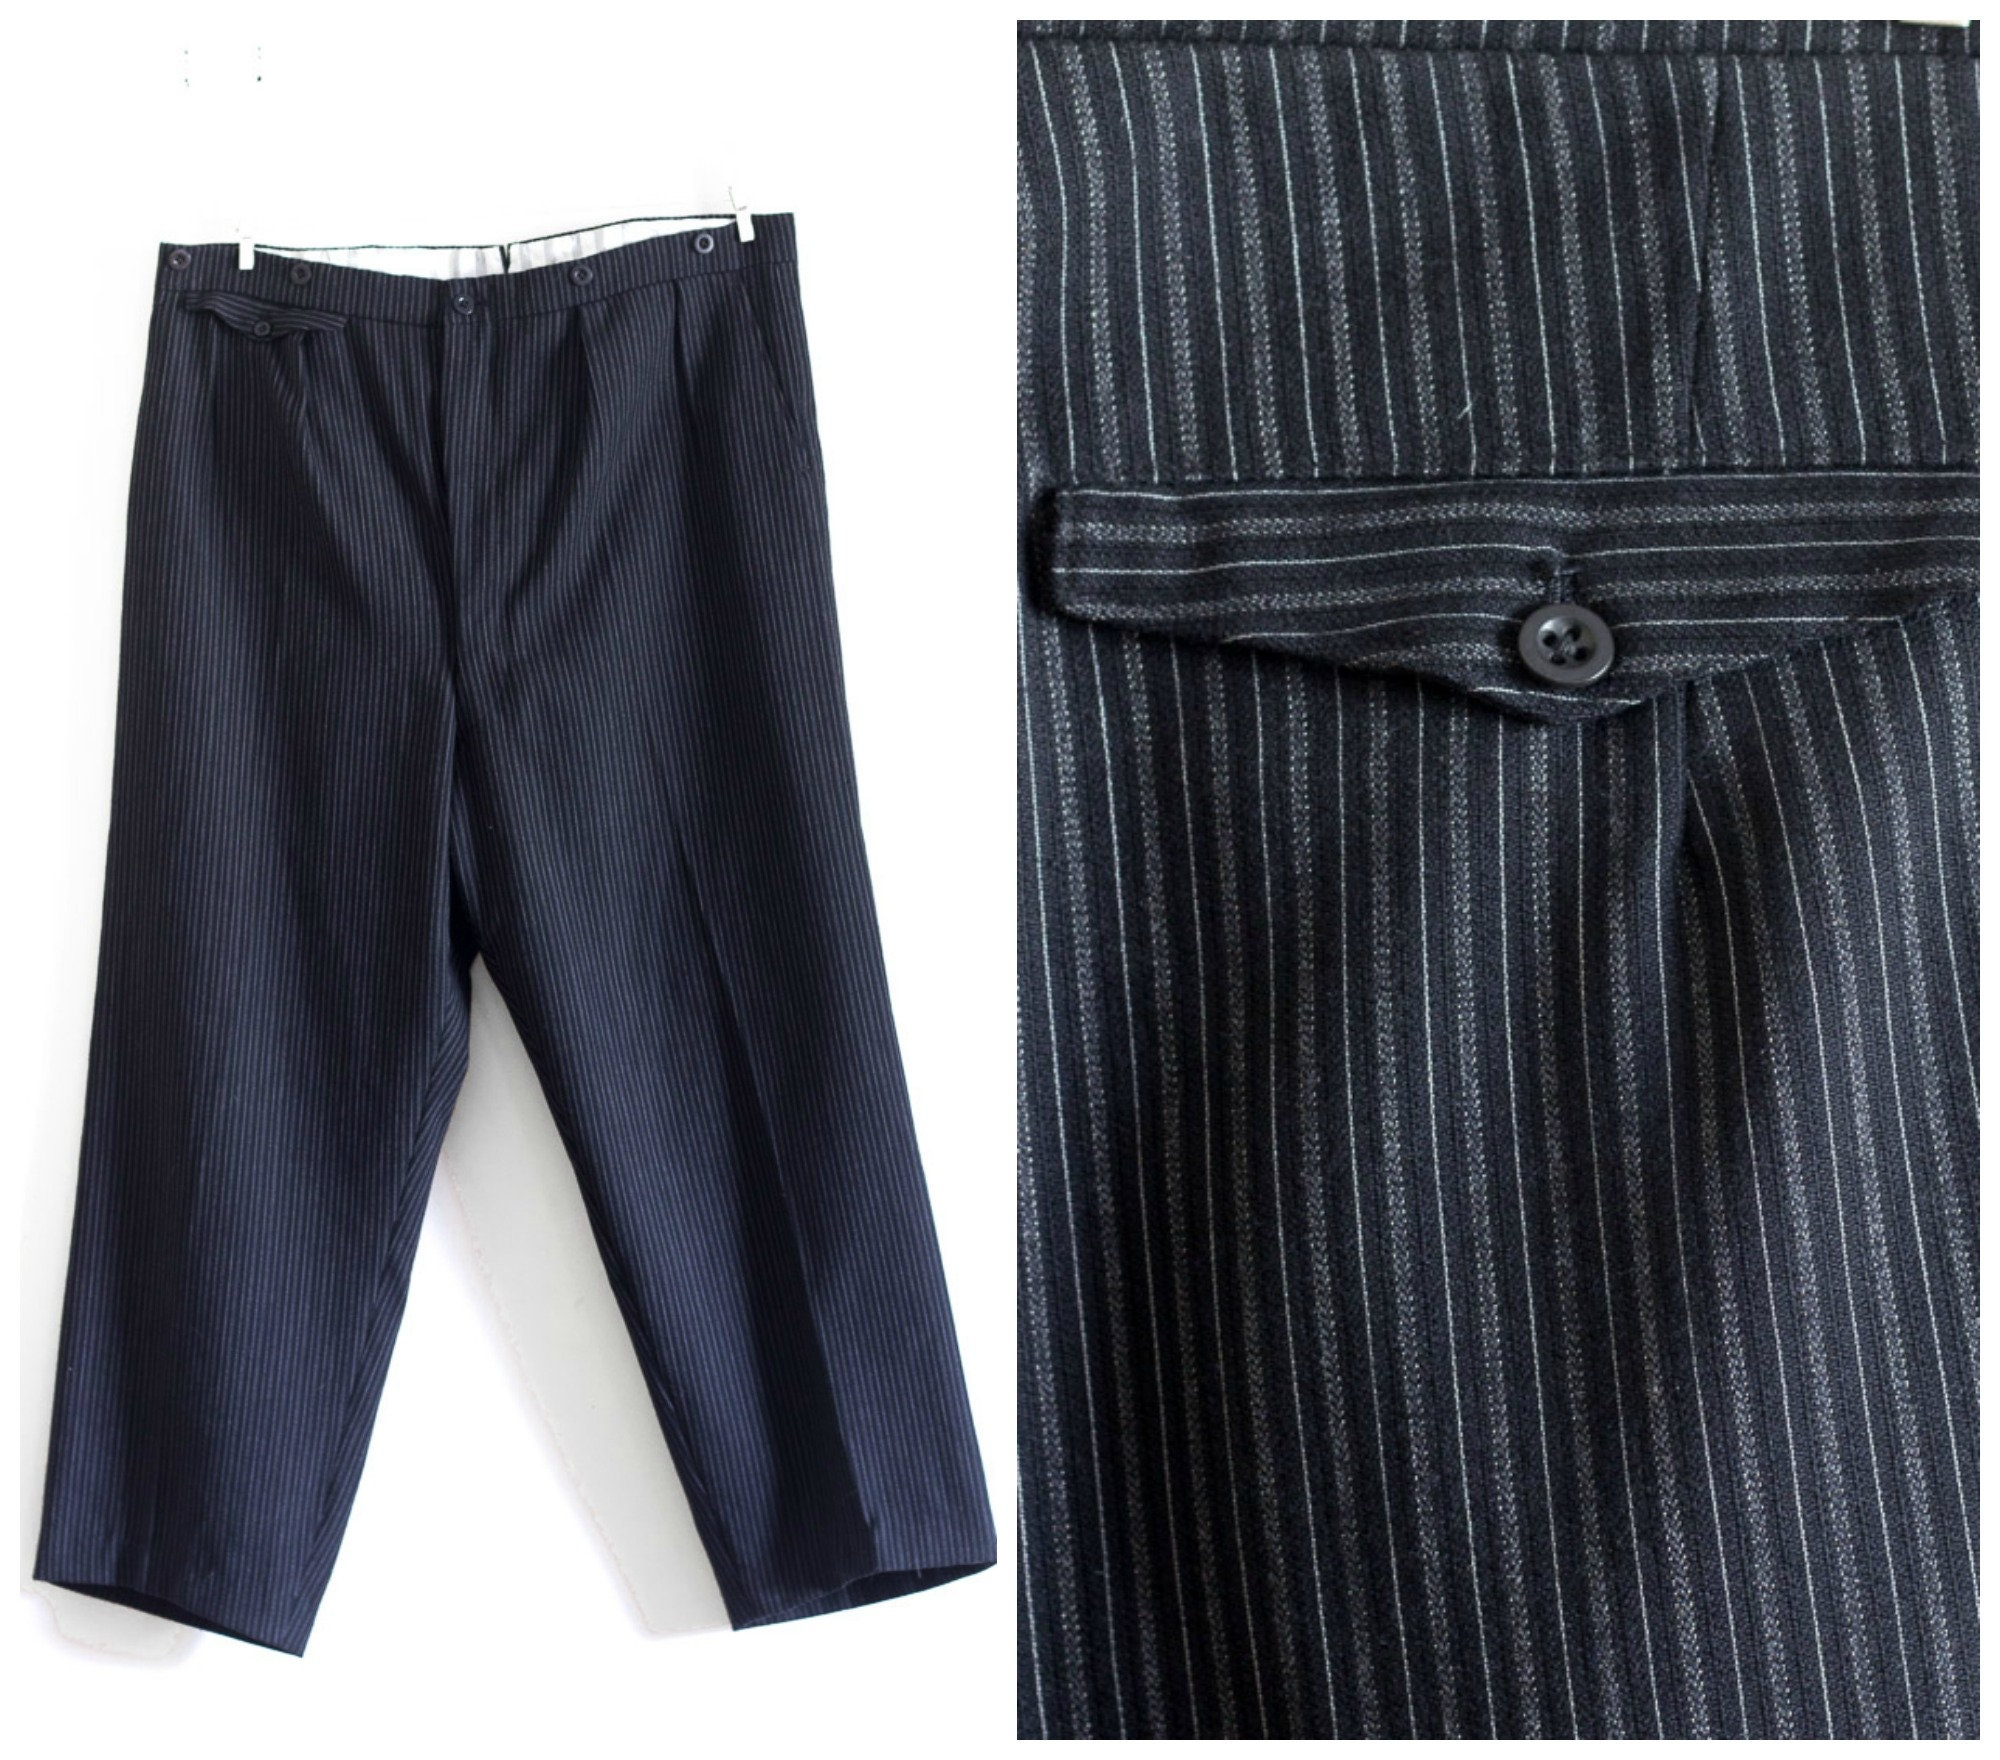 New 1930s Mens Fashion Ties 1920S Or 1930S Mens Pinstripe Trousers $0.00 AT vintagedancer.com